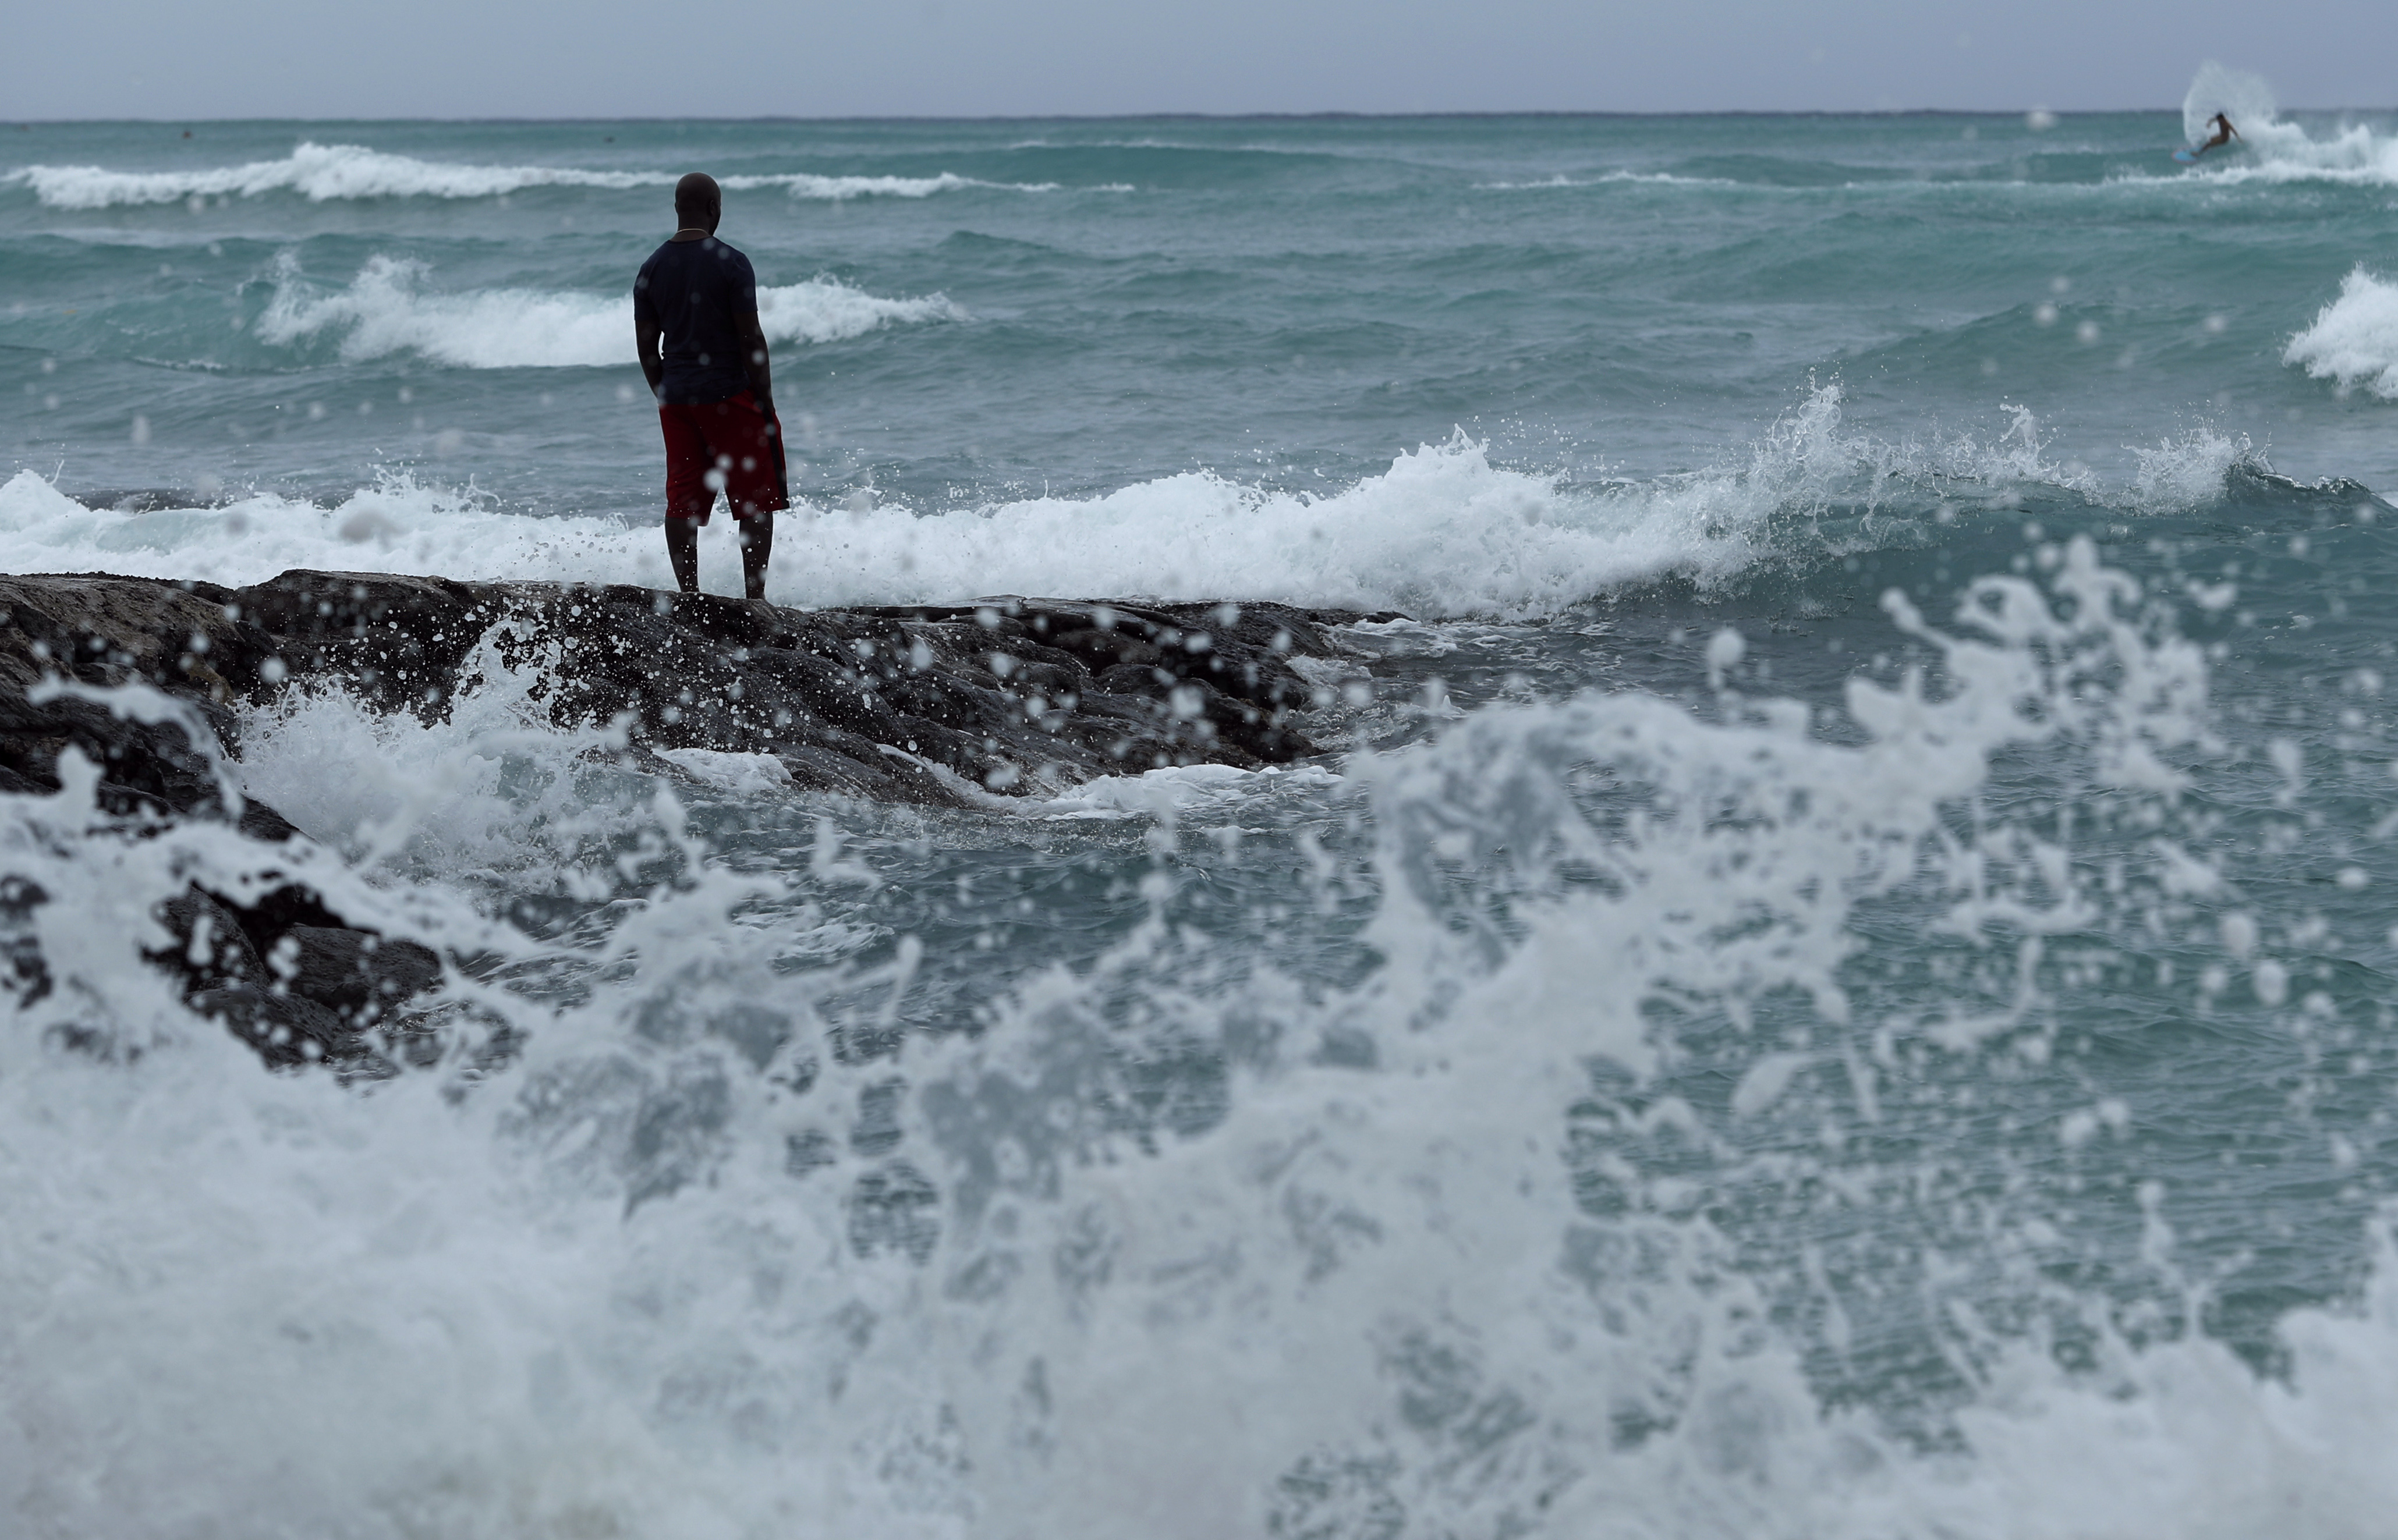 A man stands along the beach as waves crash on shore in Honolulu, Hawaii on Thursday